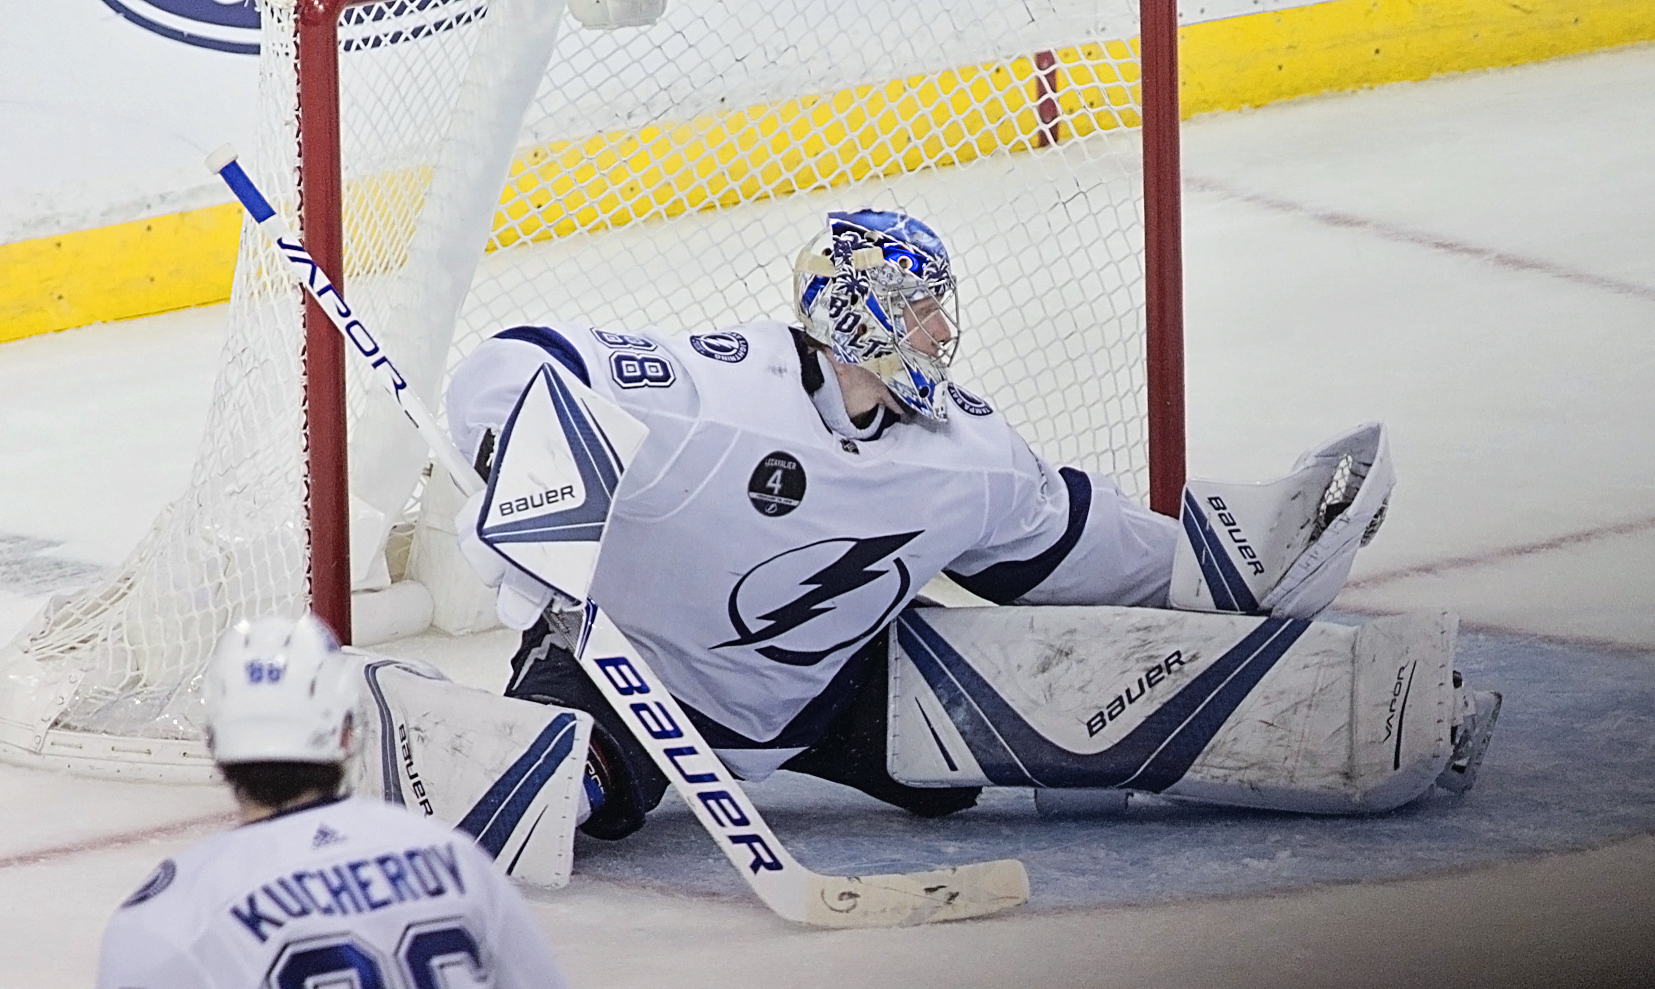 Vasilevskiy has won only two of his last seven starts./CARMEN MANDATO